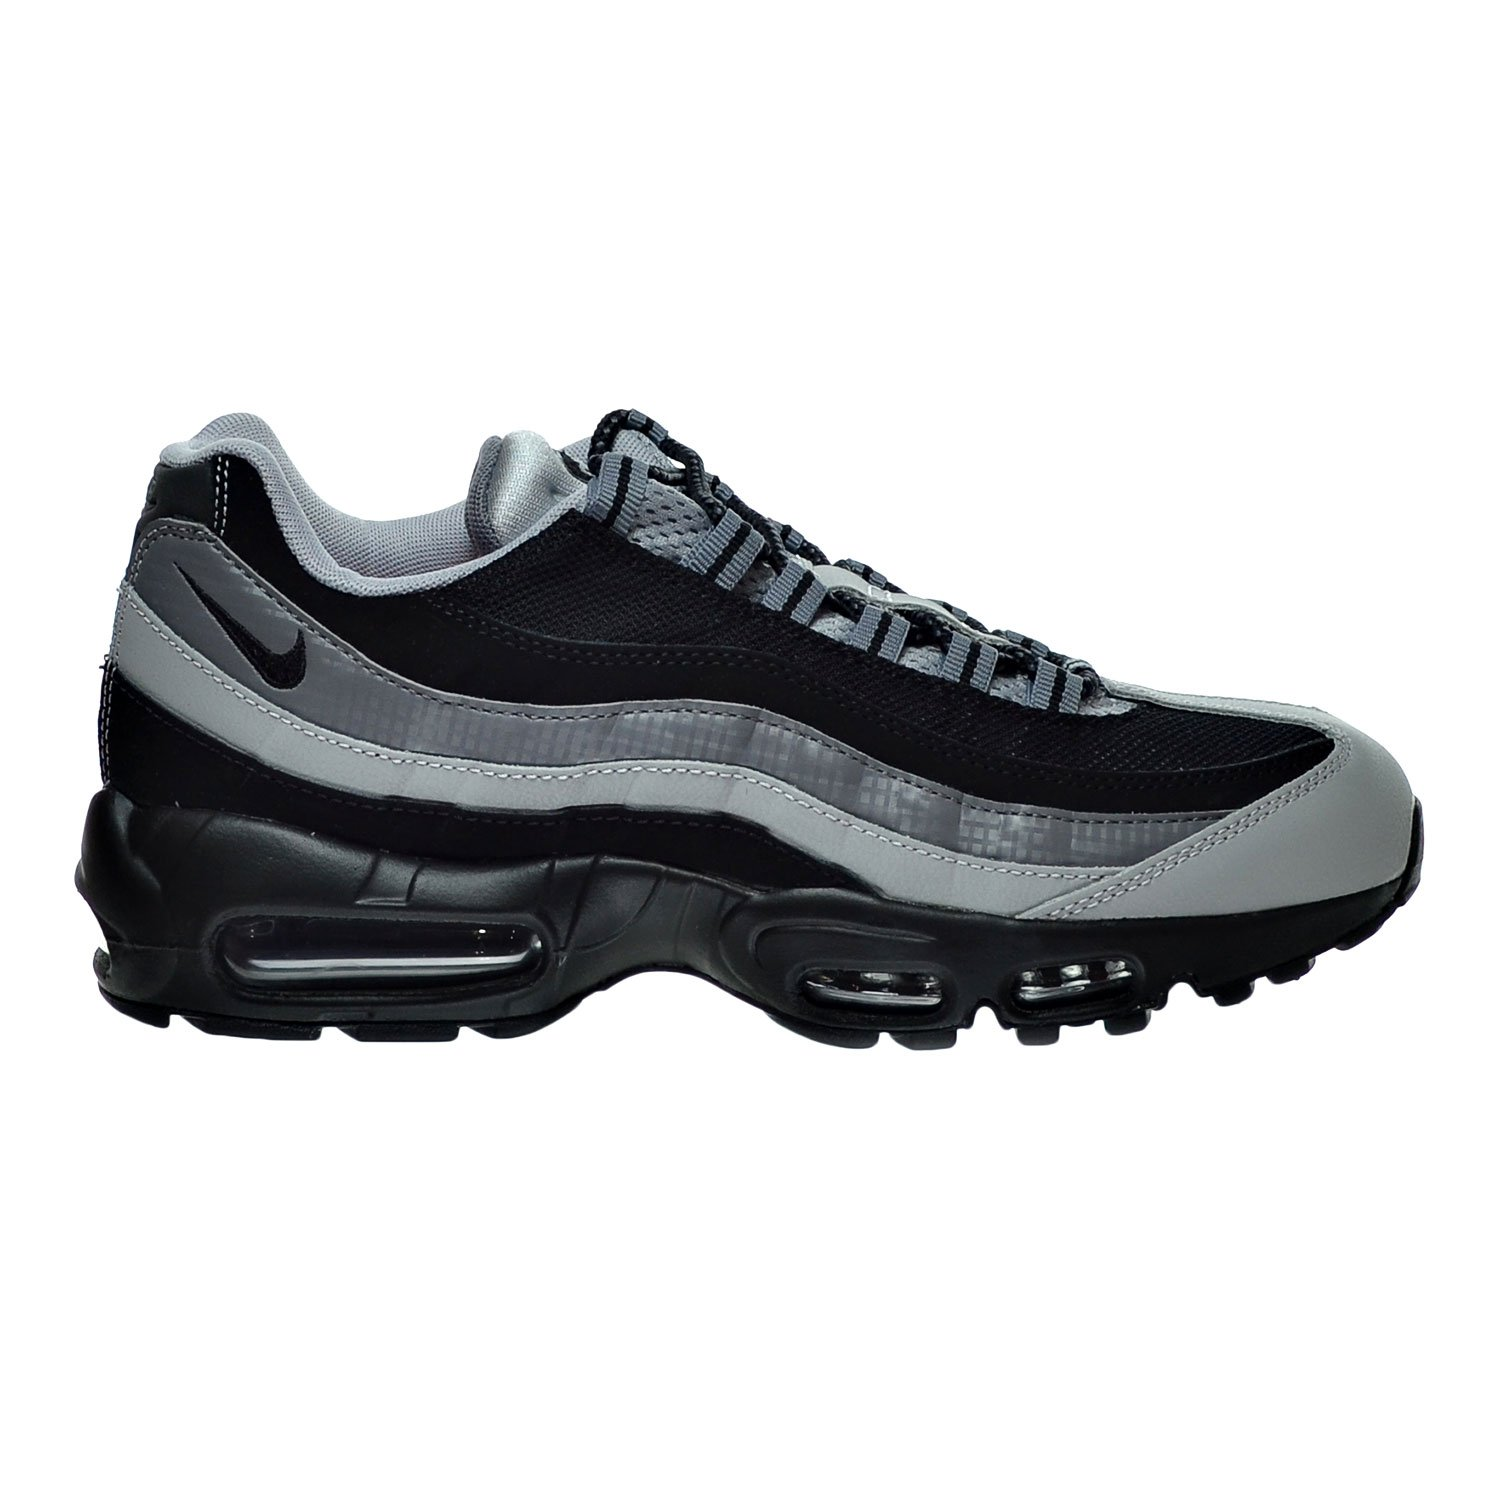 official photos 784e1 bf4d8 Amazon.com   Nike Air Max 95 Essential Men s Shoes Black Wolf Grey Cool  Grey 749766-005   Fashion Sneakers